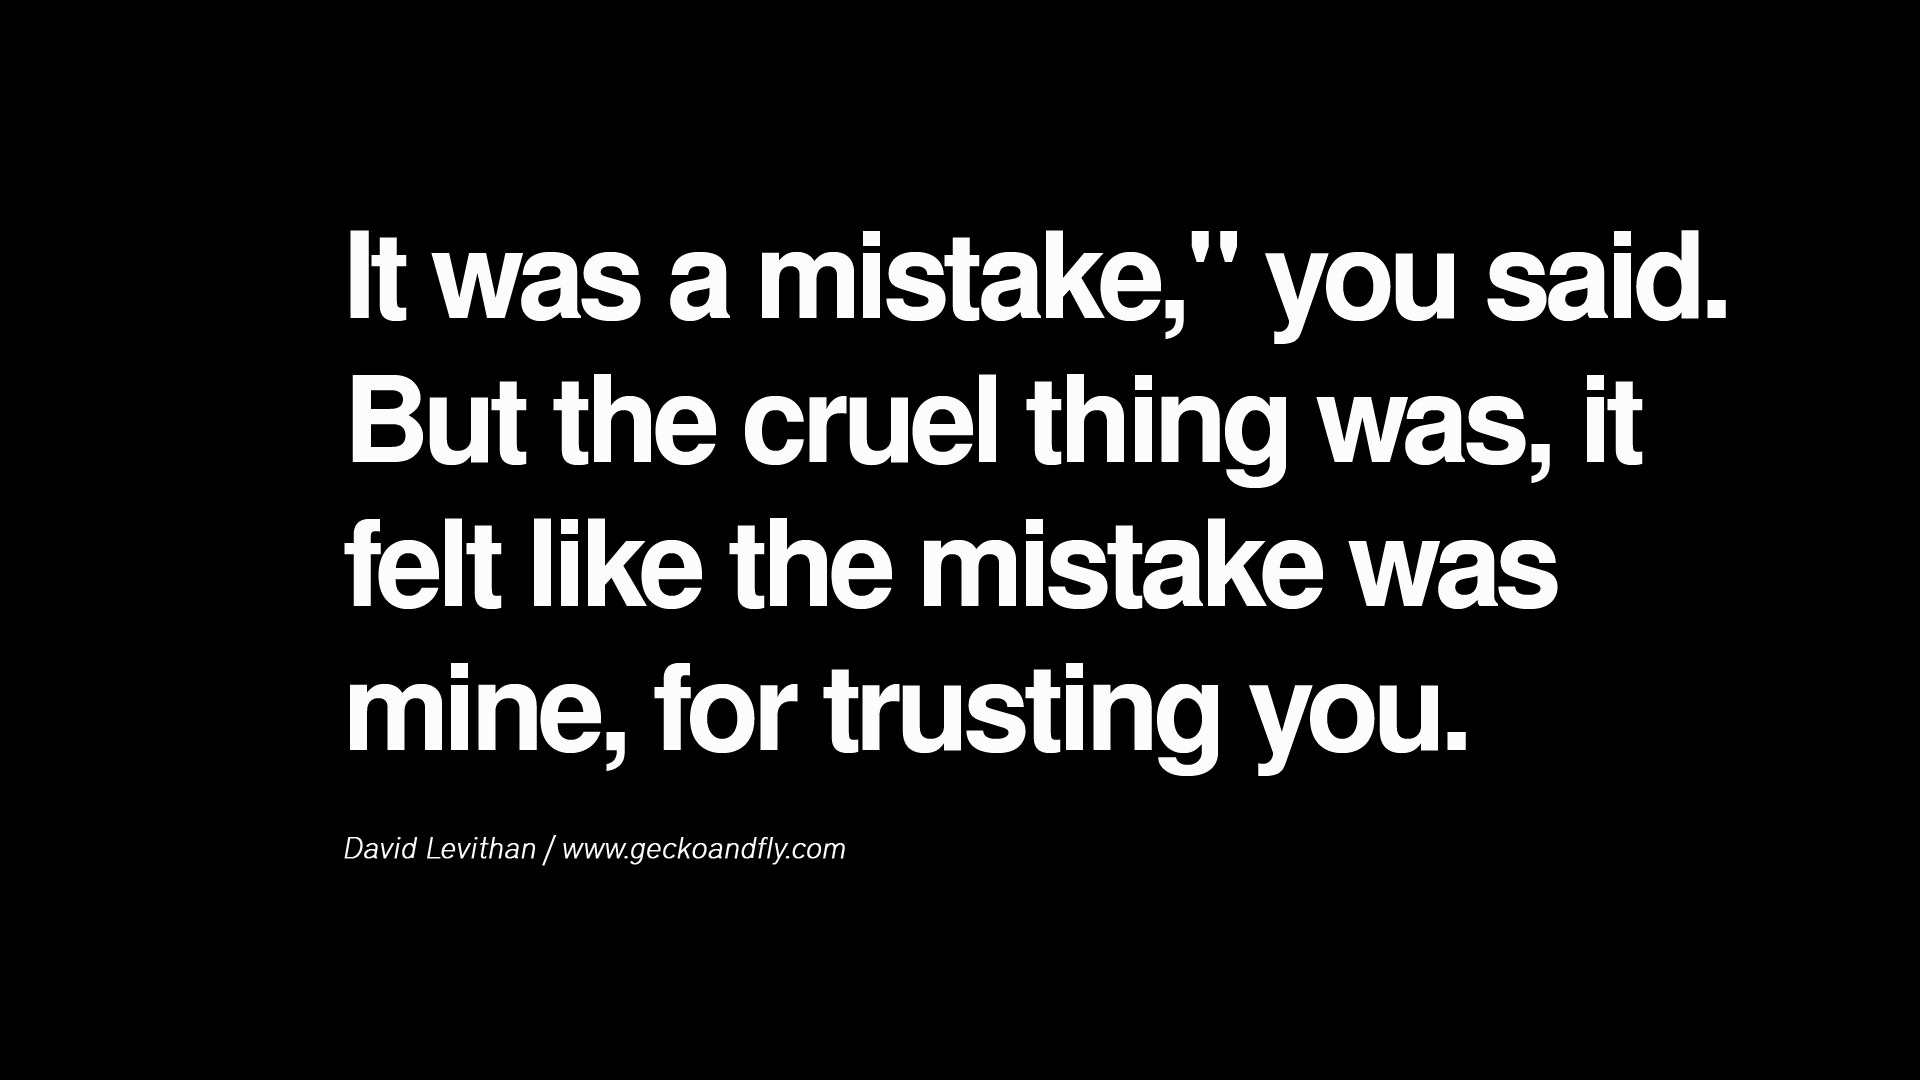 Betrayal Quotes And Sayings Quotesgram: Betrayed Love Quotes And Sayings. QuotesGram